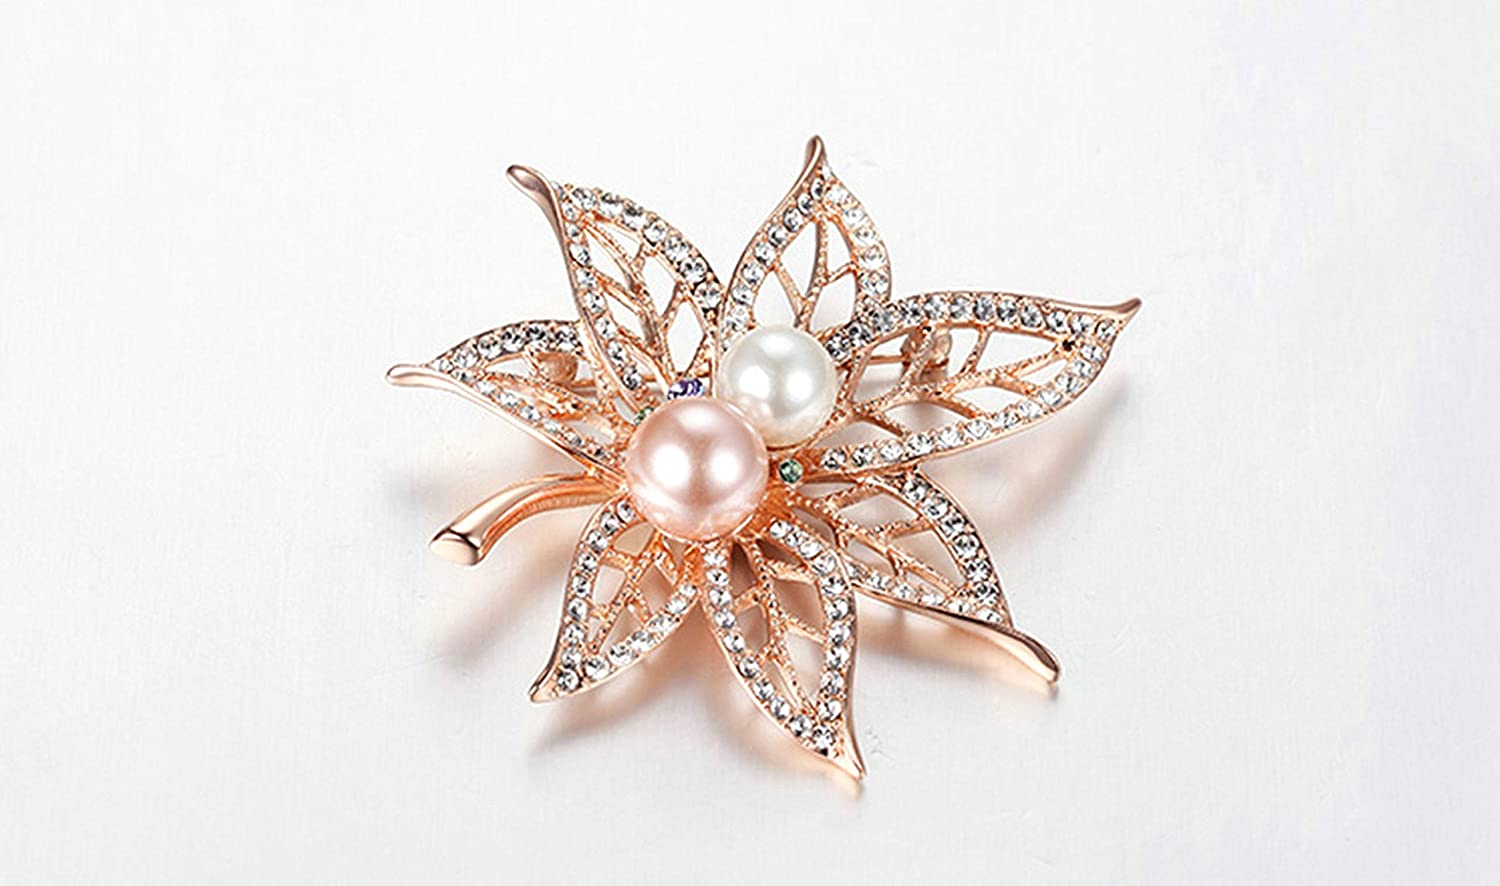 Aooaz Jewelry Gold Plated Base Brooch Hollow Leaves CZ Pearl Brooches for Girl Gold